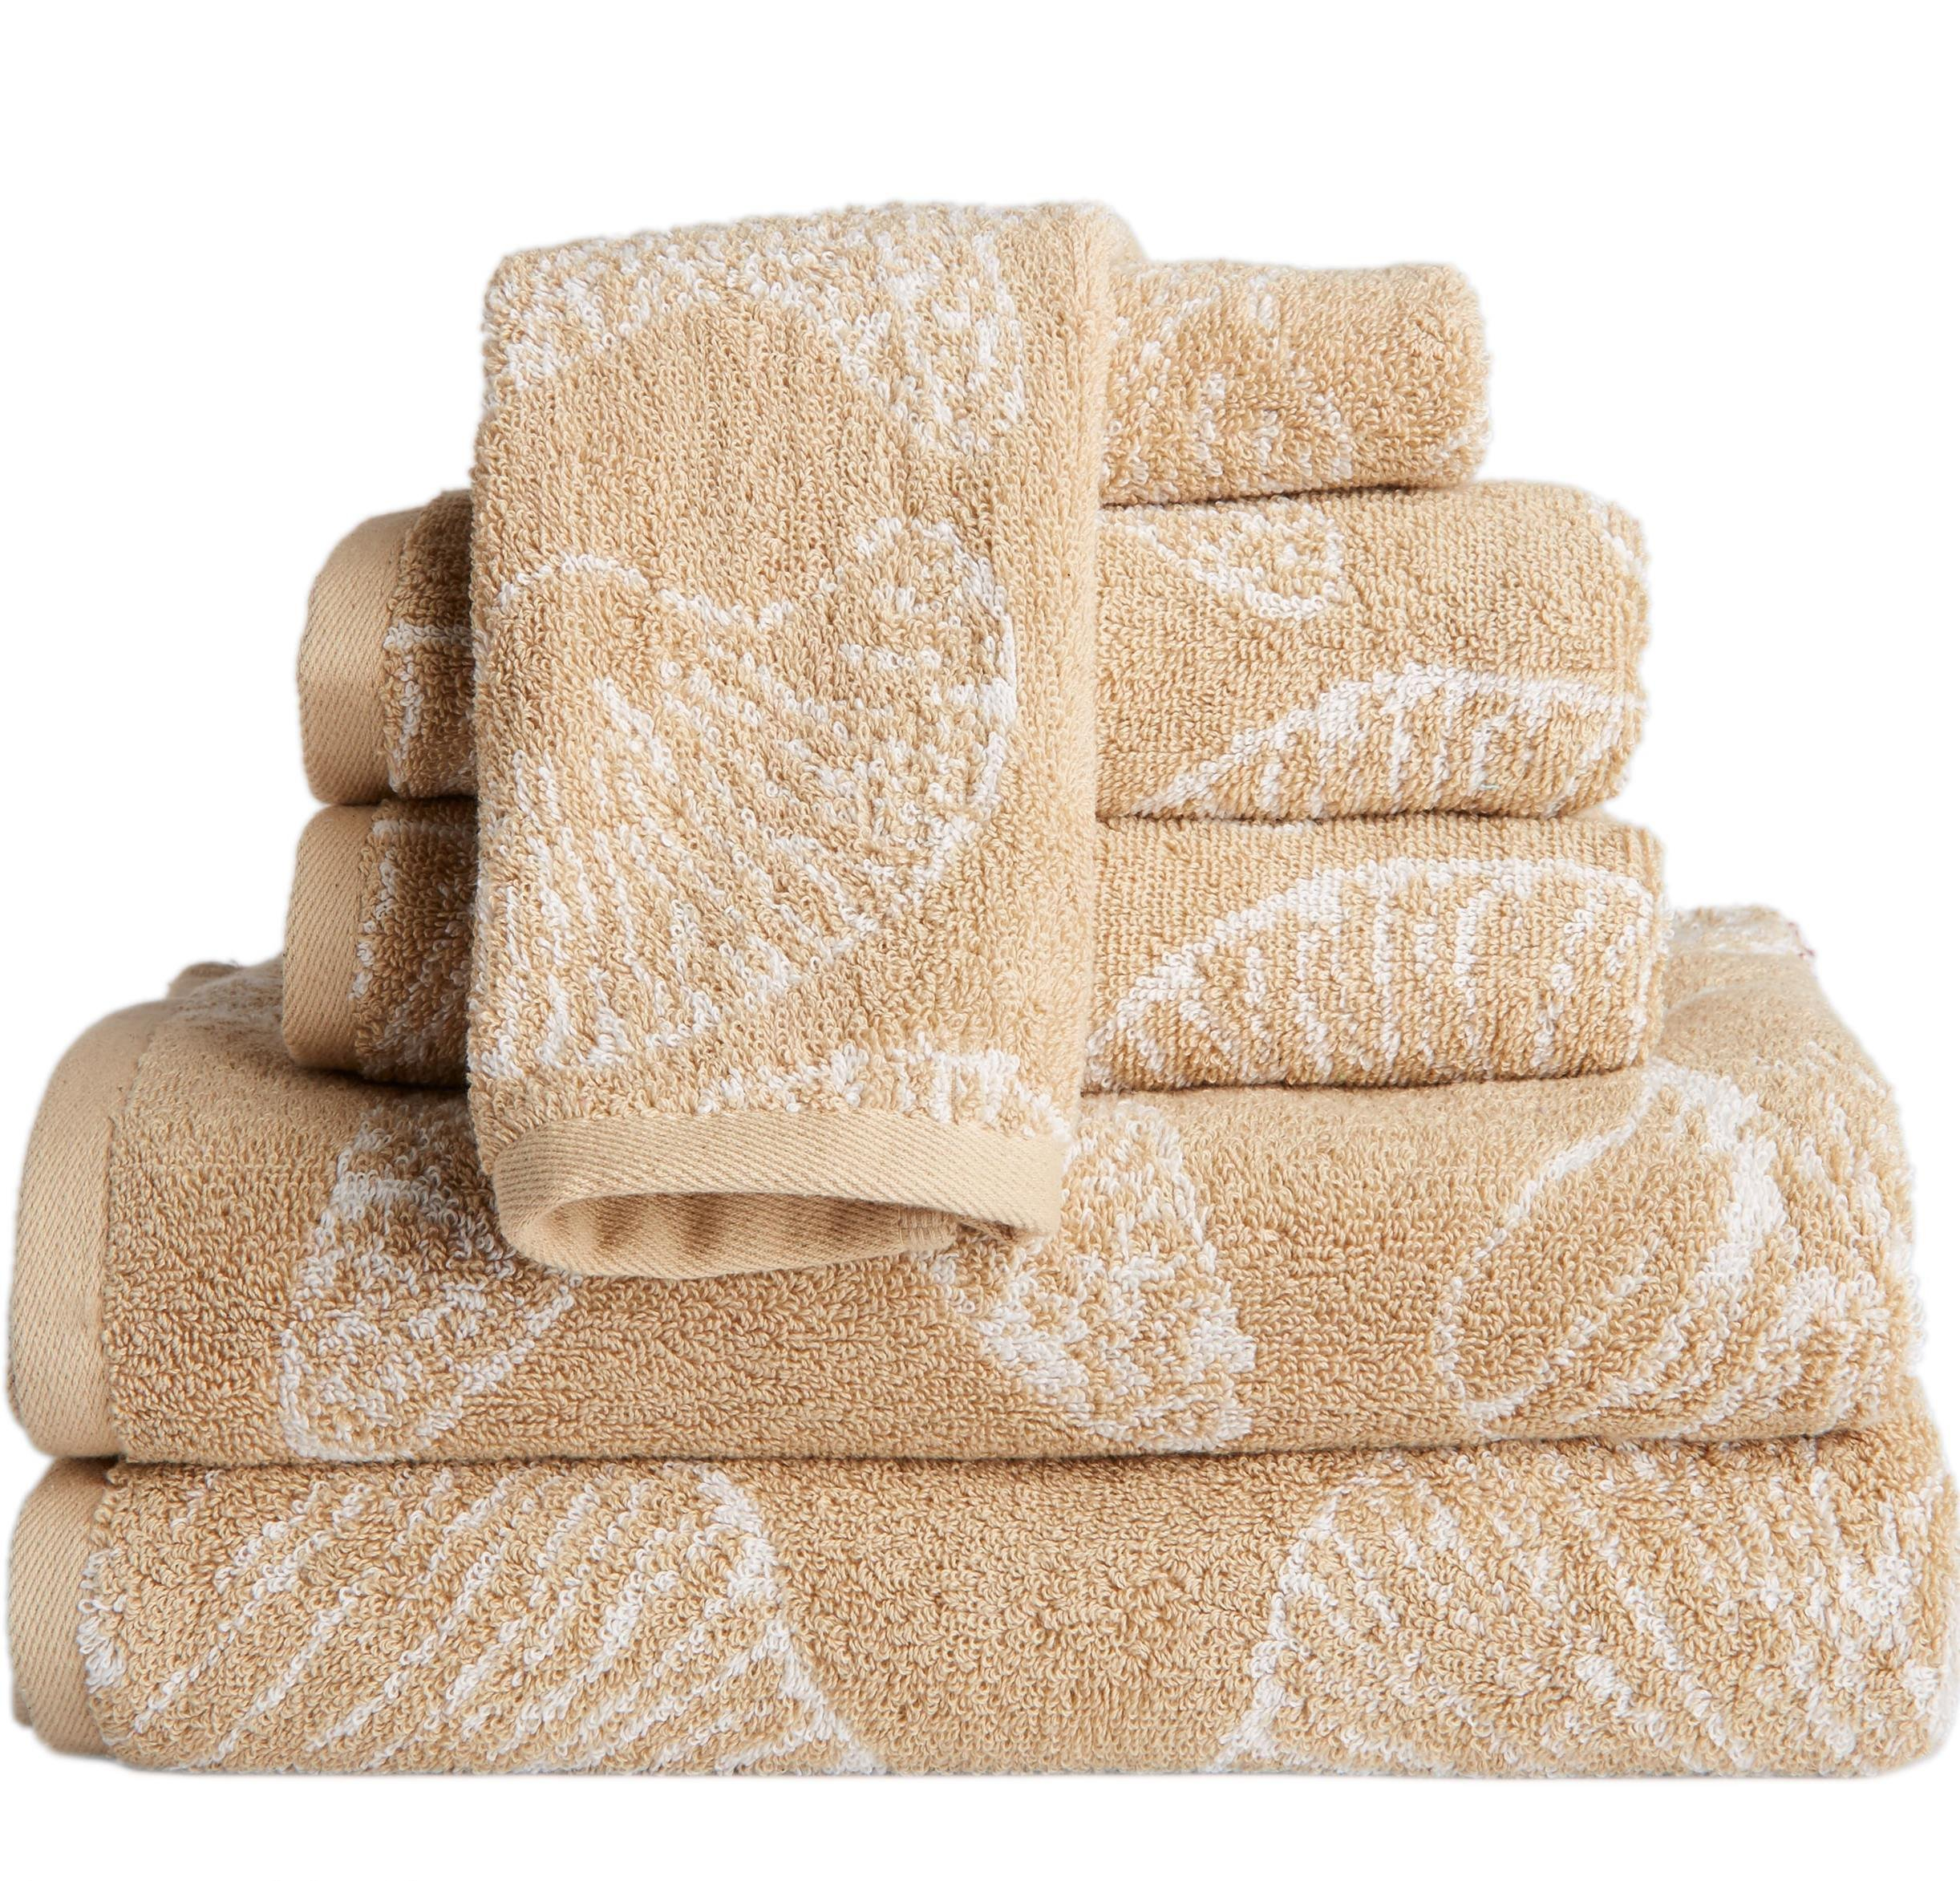 MP 6 Piece Beige Beach Themed Towel Set, Driftwood Jacquard Sea Shell Pattern Starfish Nautical Ocean Coastal Soft Light Beaches Bath Towels Shower Bathtub, Cotton